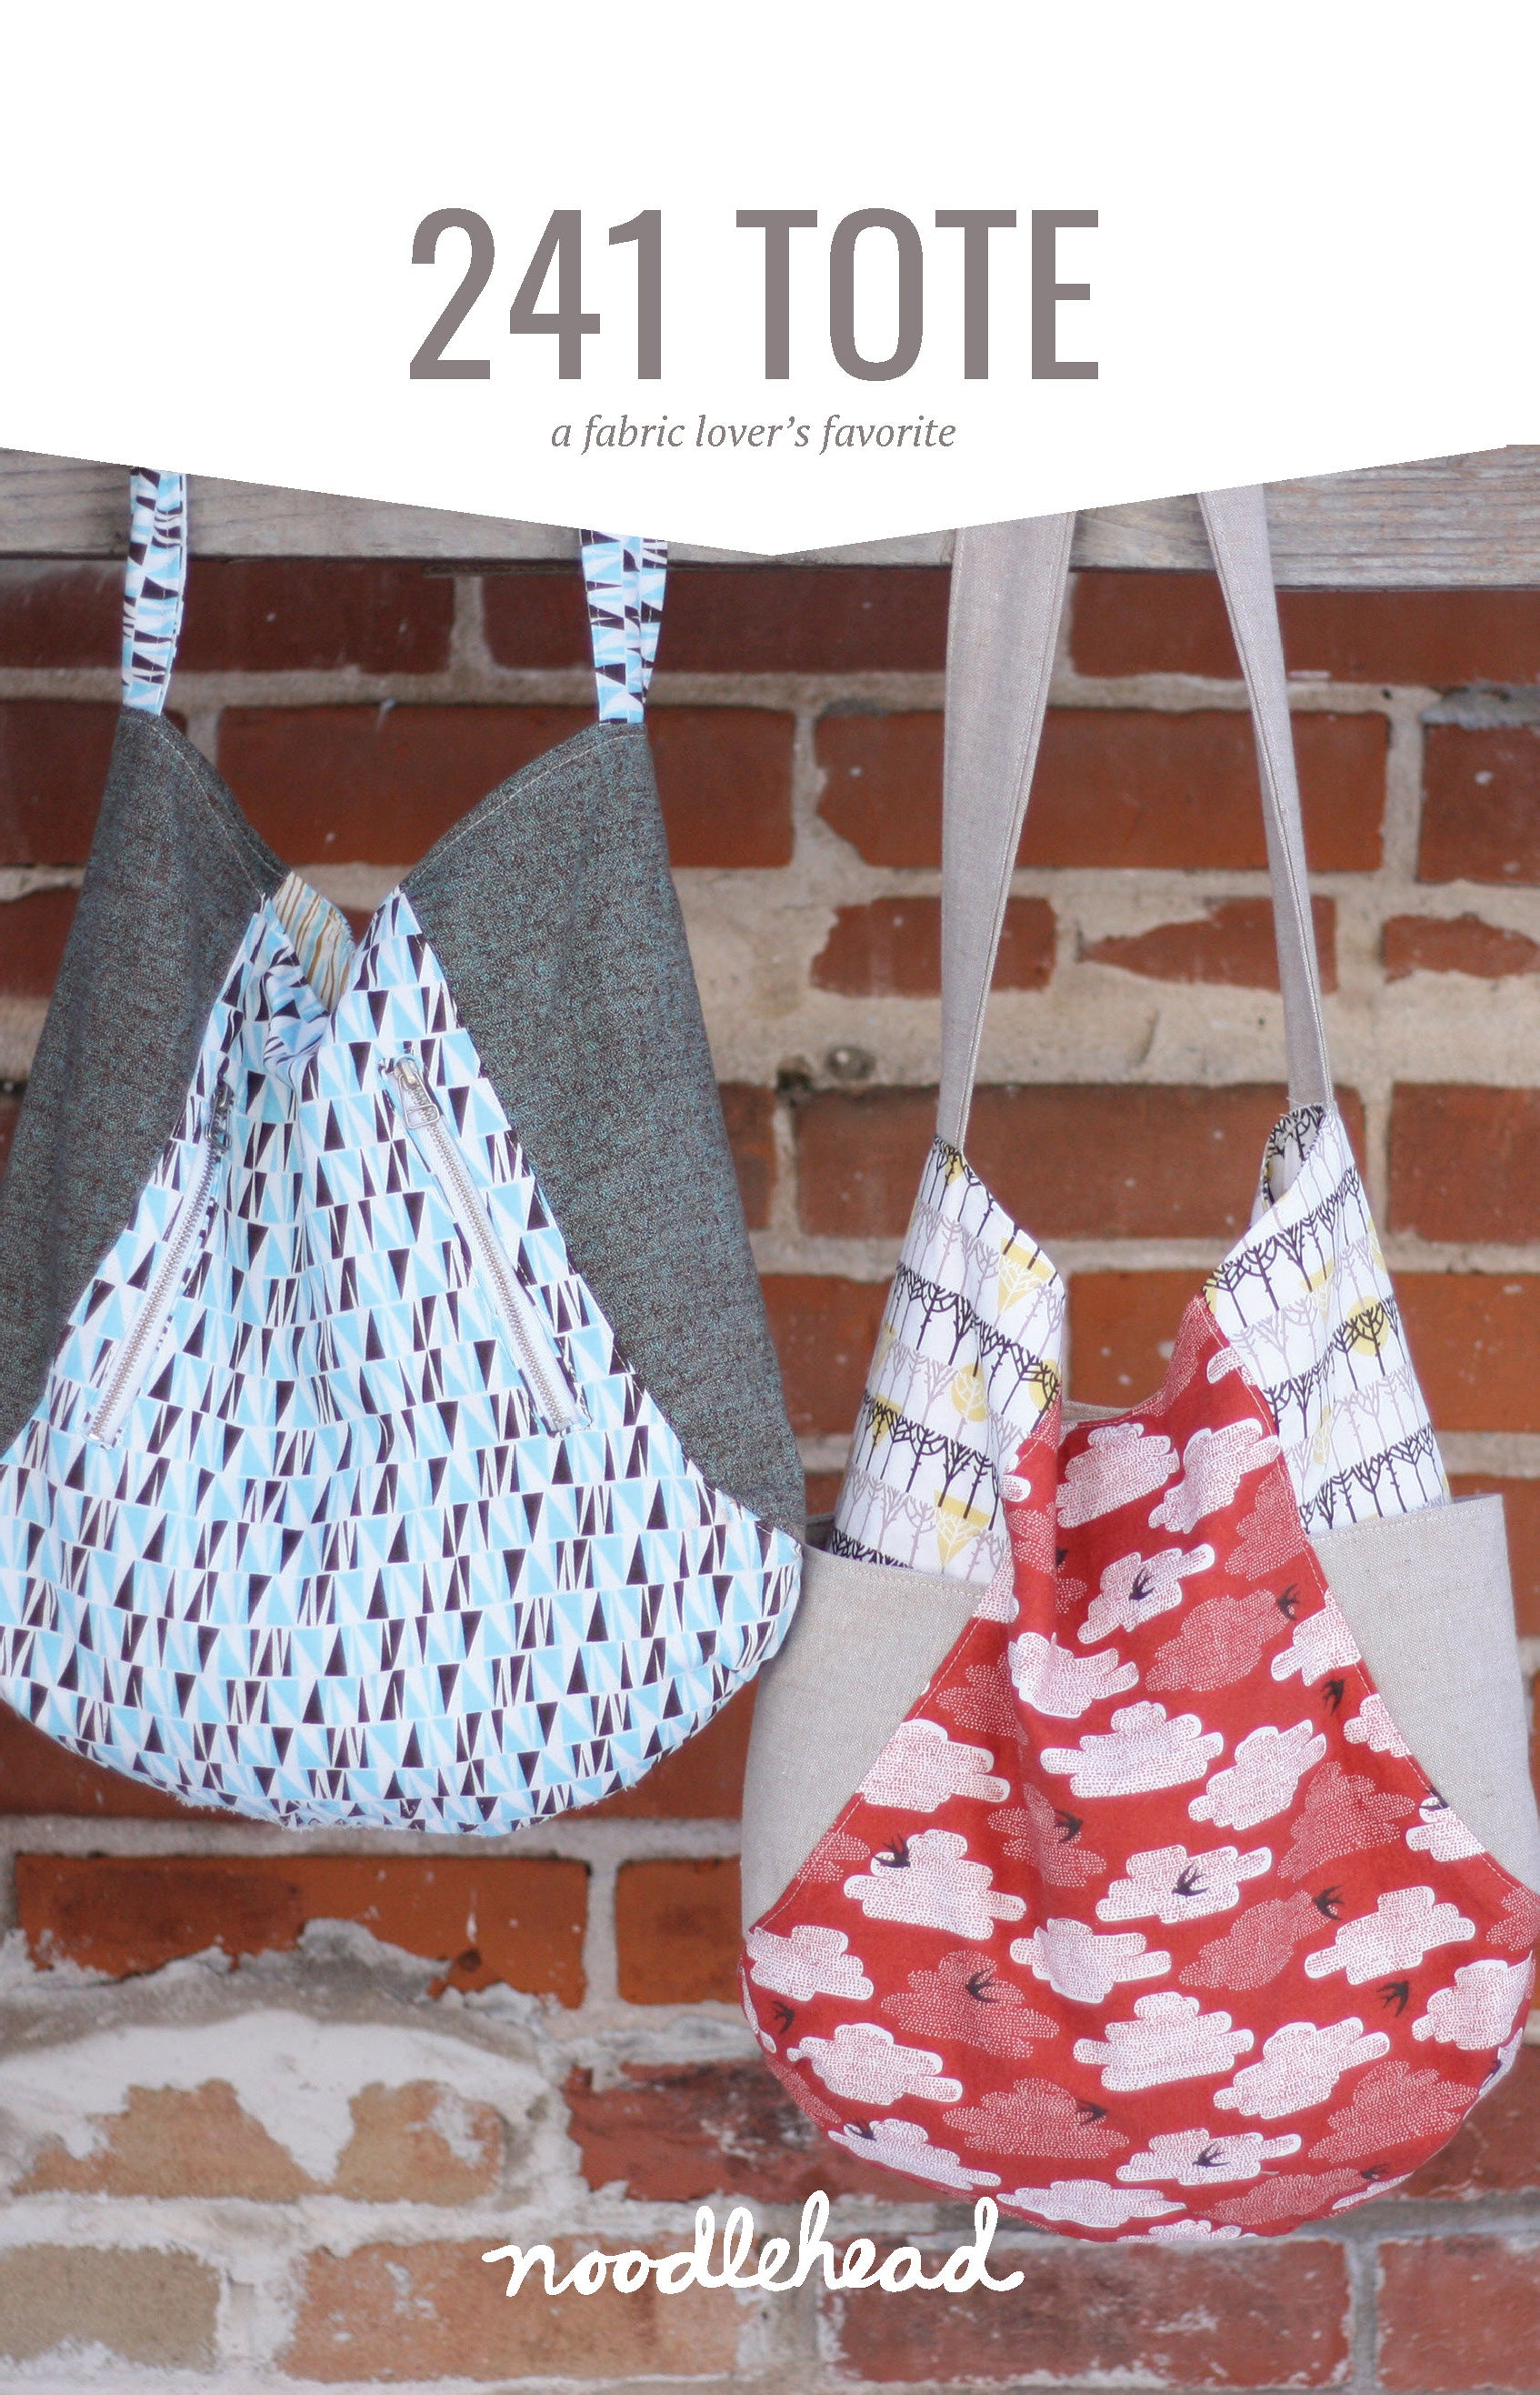 241 Tote Sewing Pattern by Noodlehead